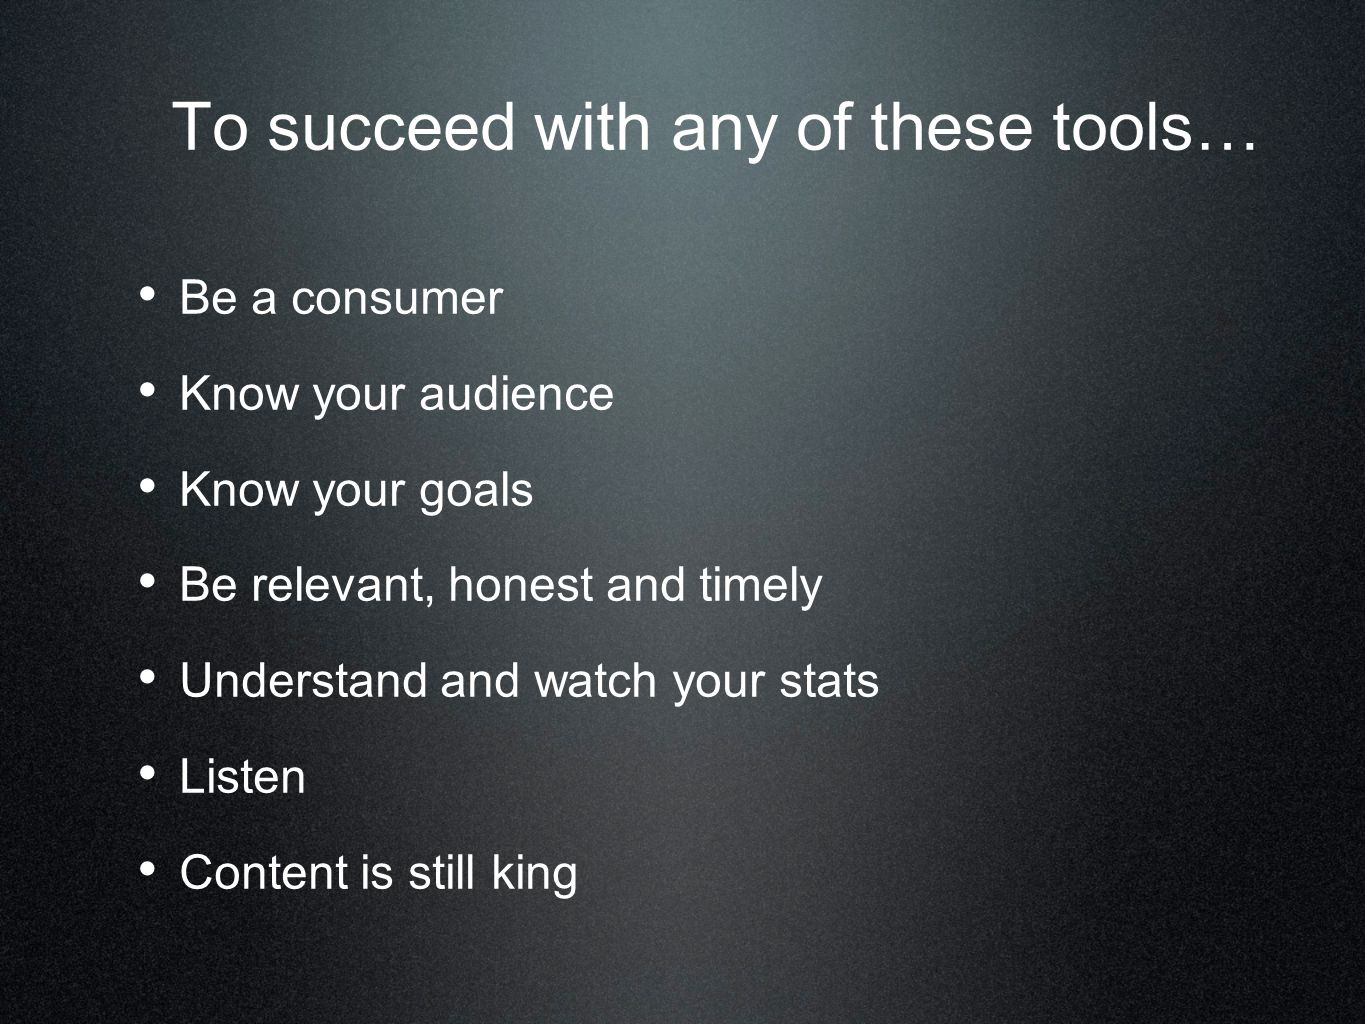 To succeed with any of these tools… Be a consumer Know your audience Know your goals Be relevant, honest and timely Understand and watch your stats Listen Content is still king